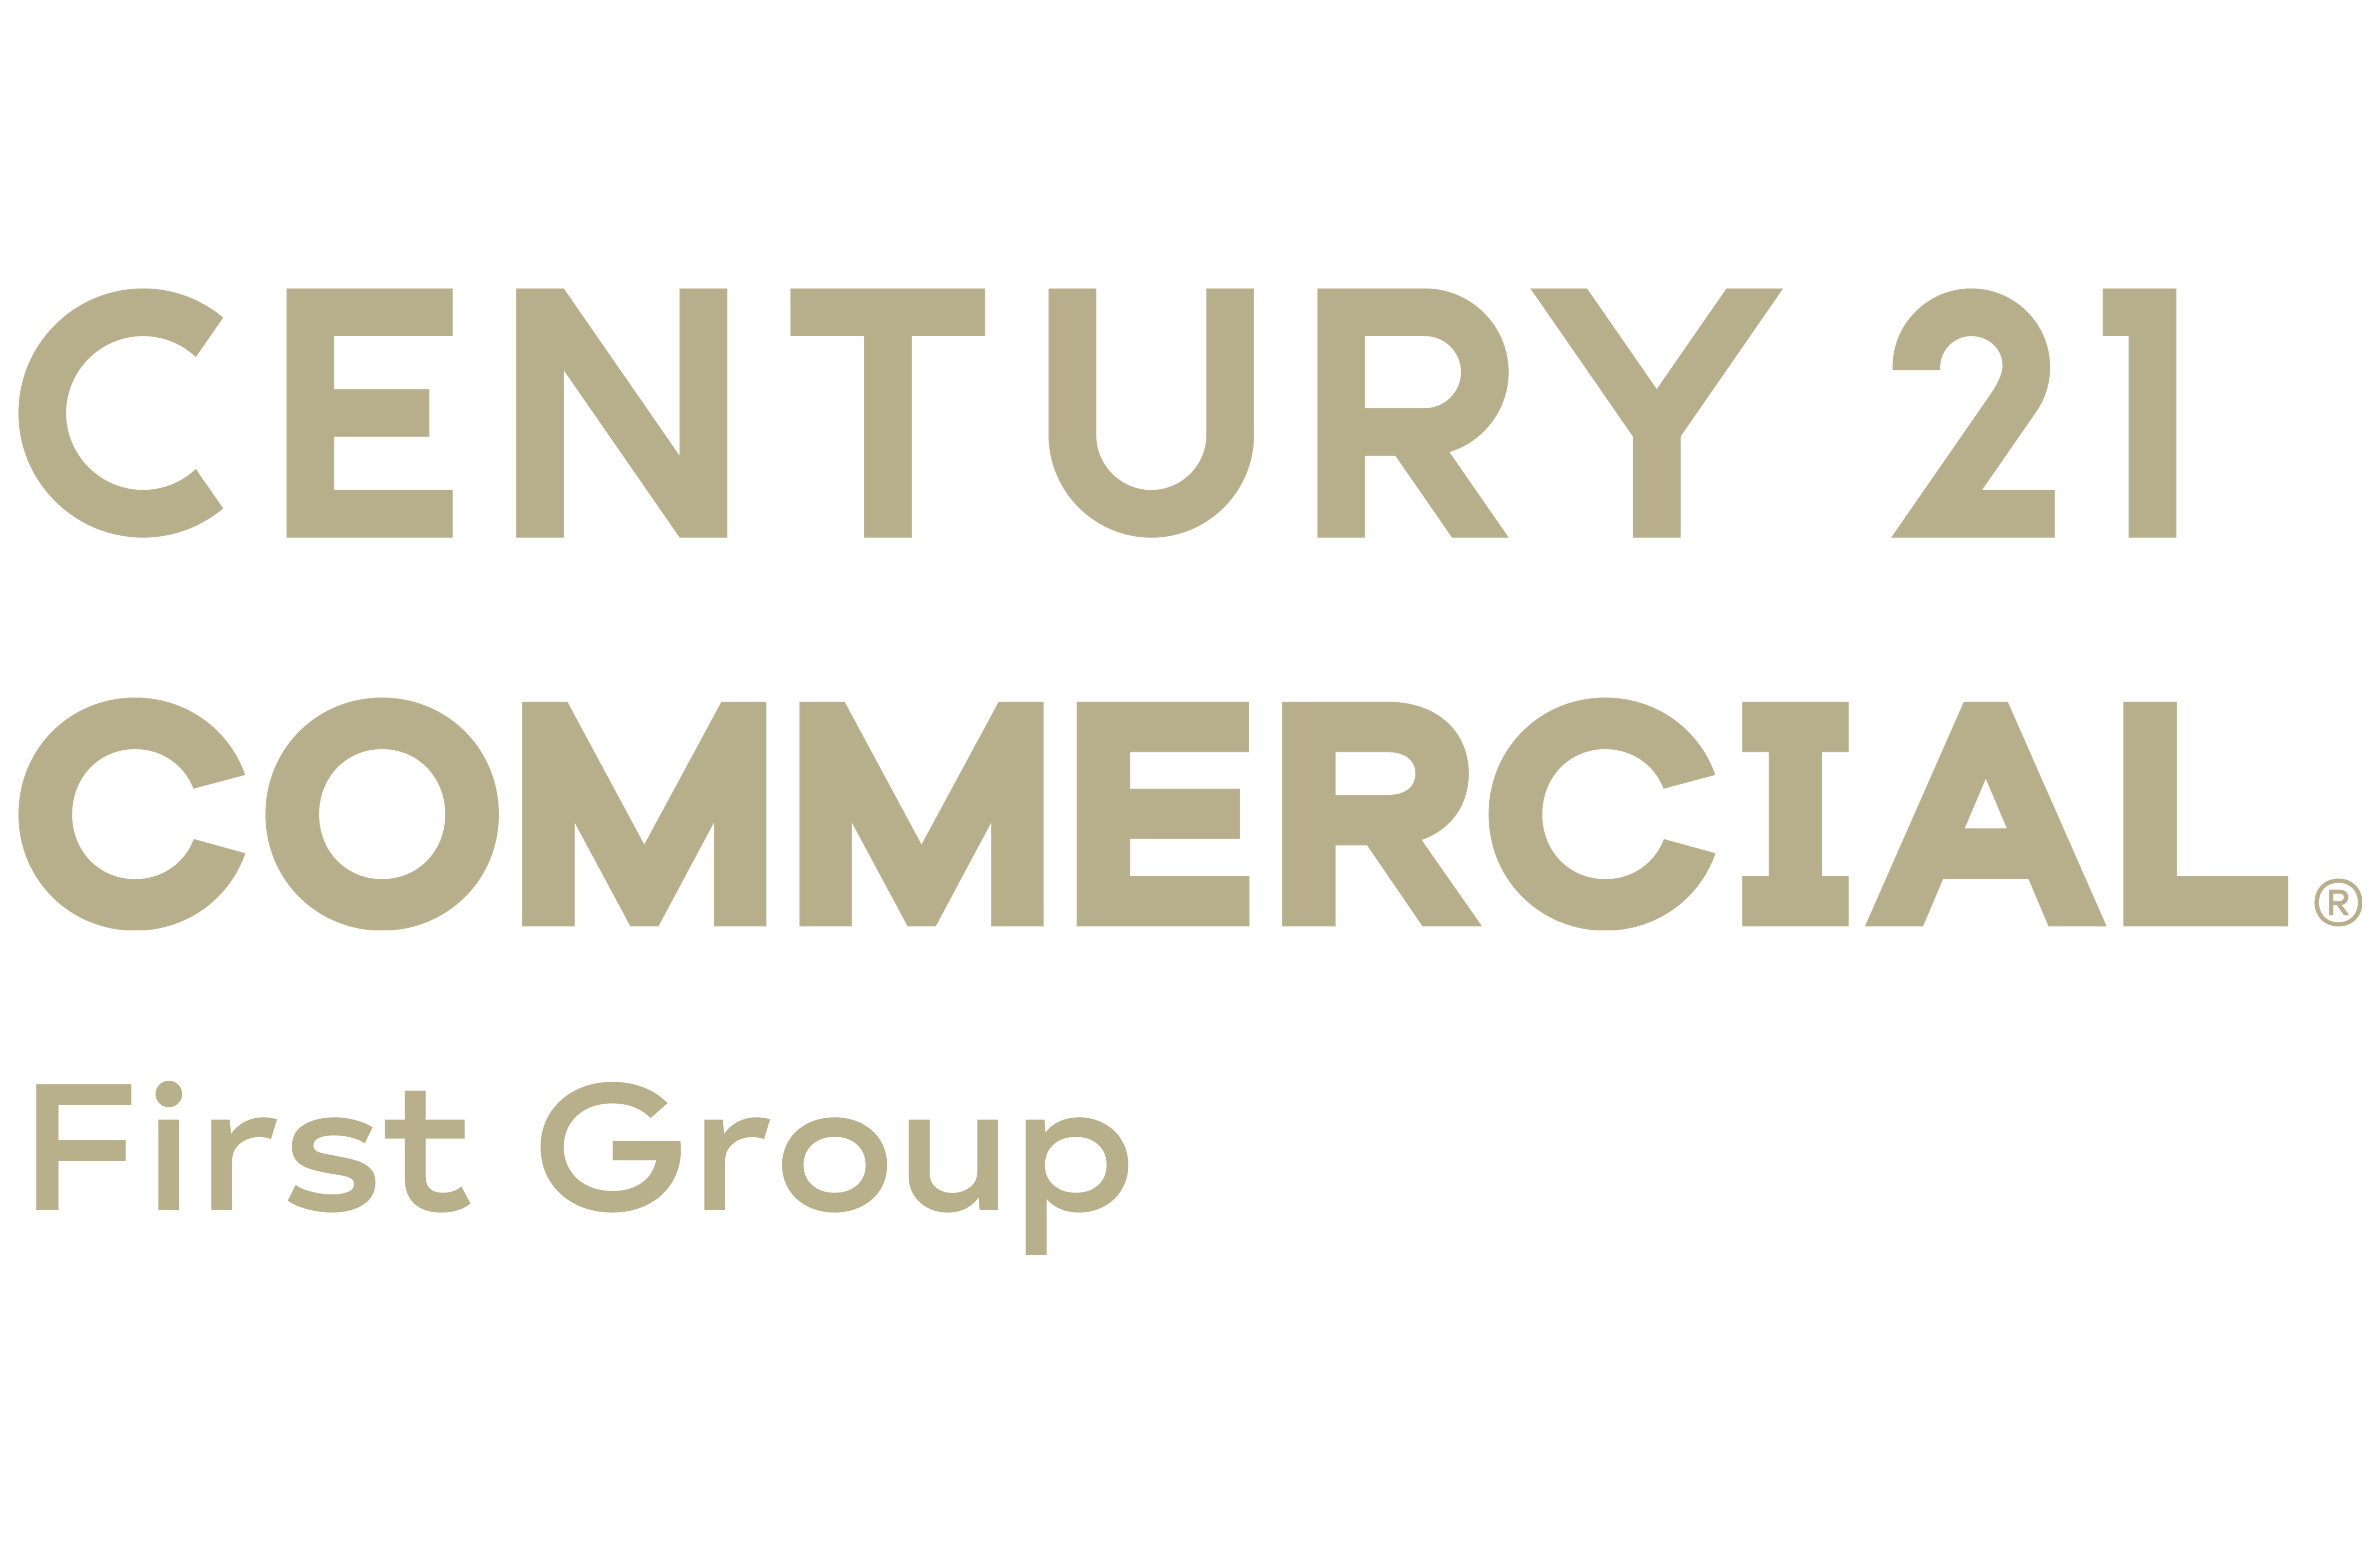 CENTURY 21 First Group